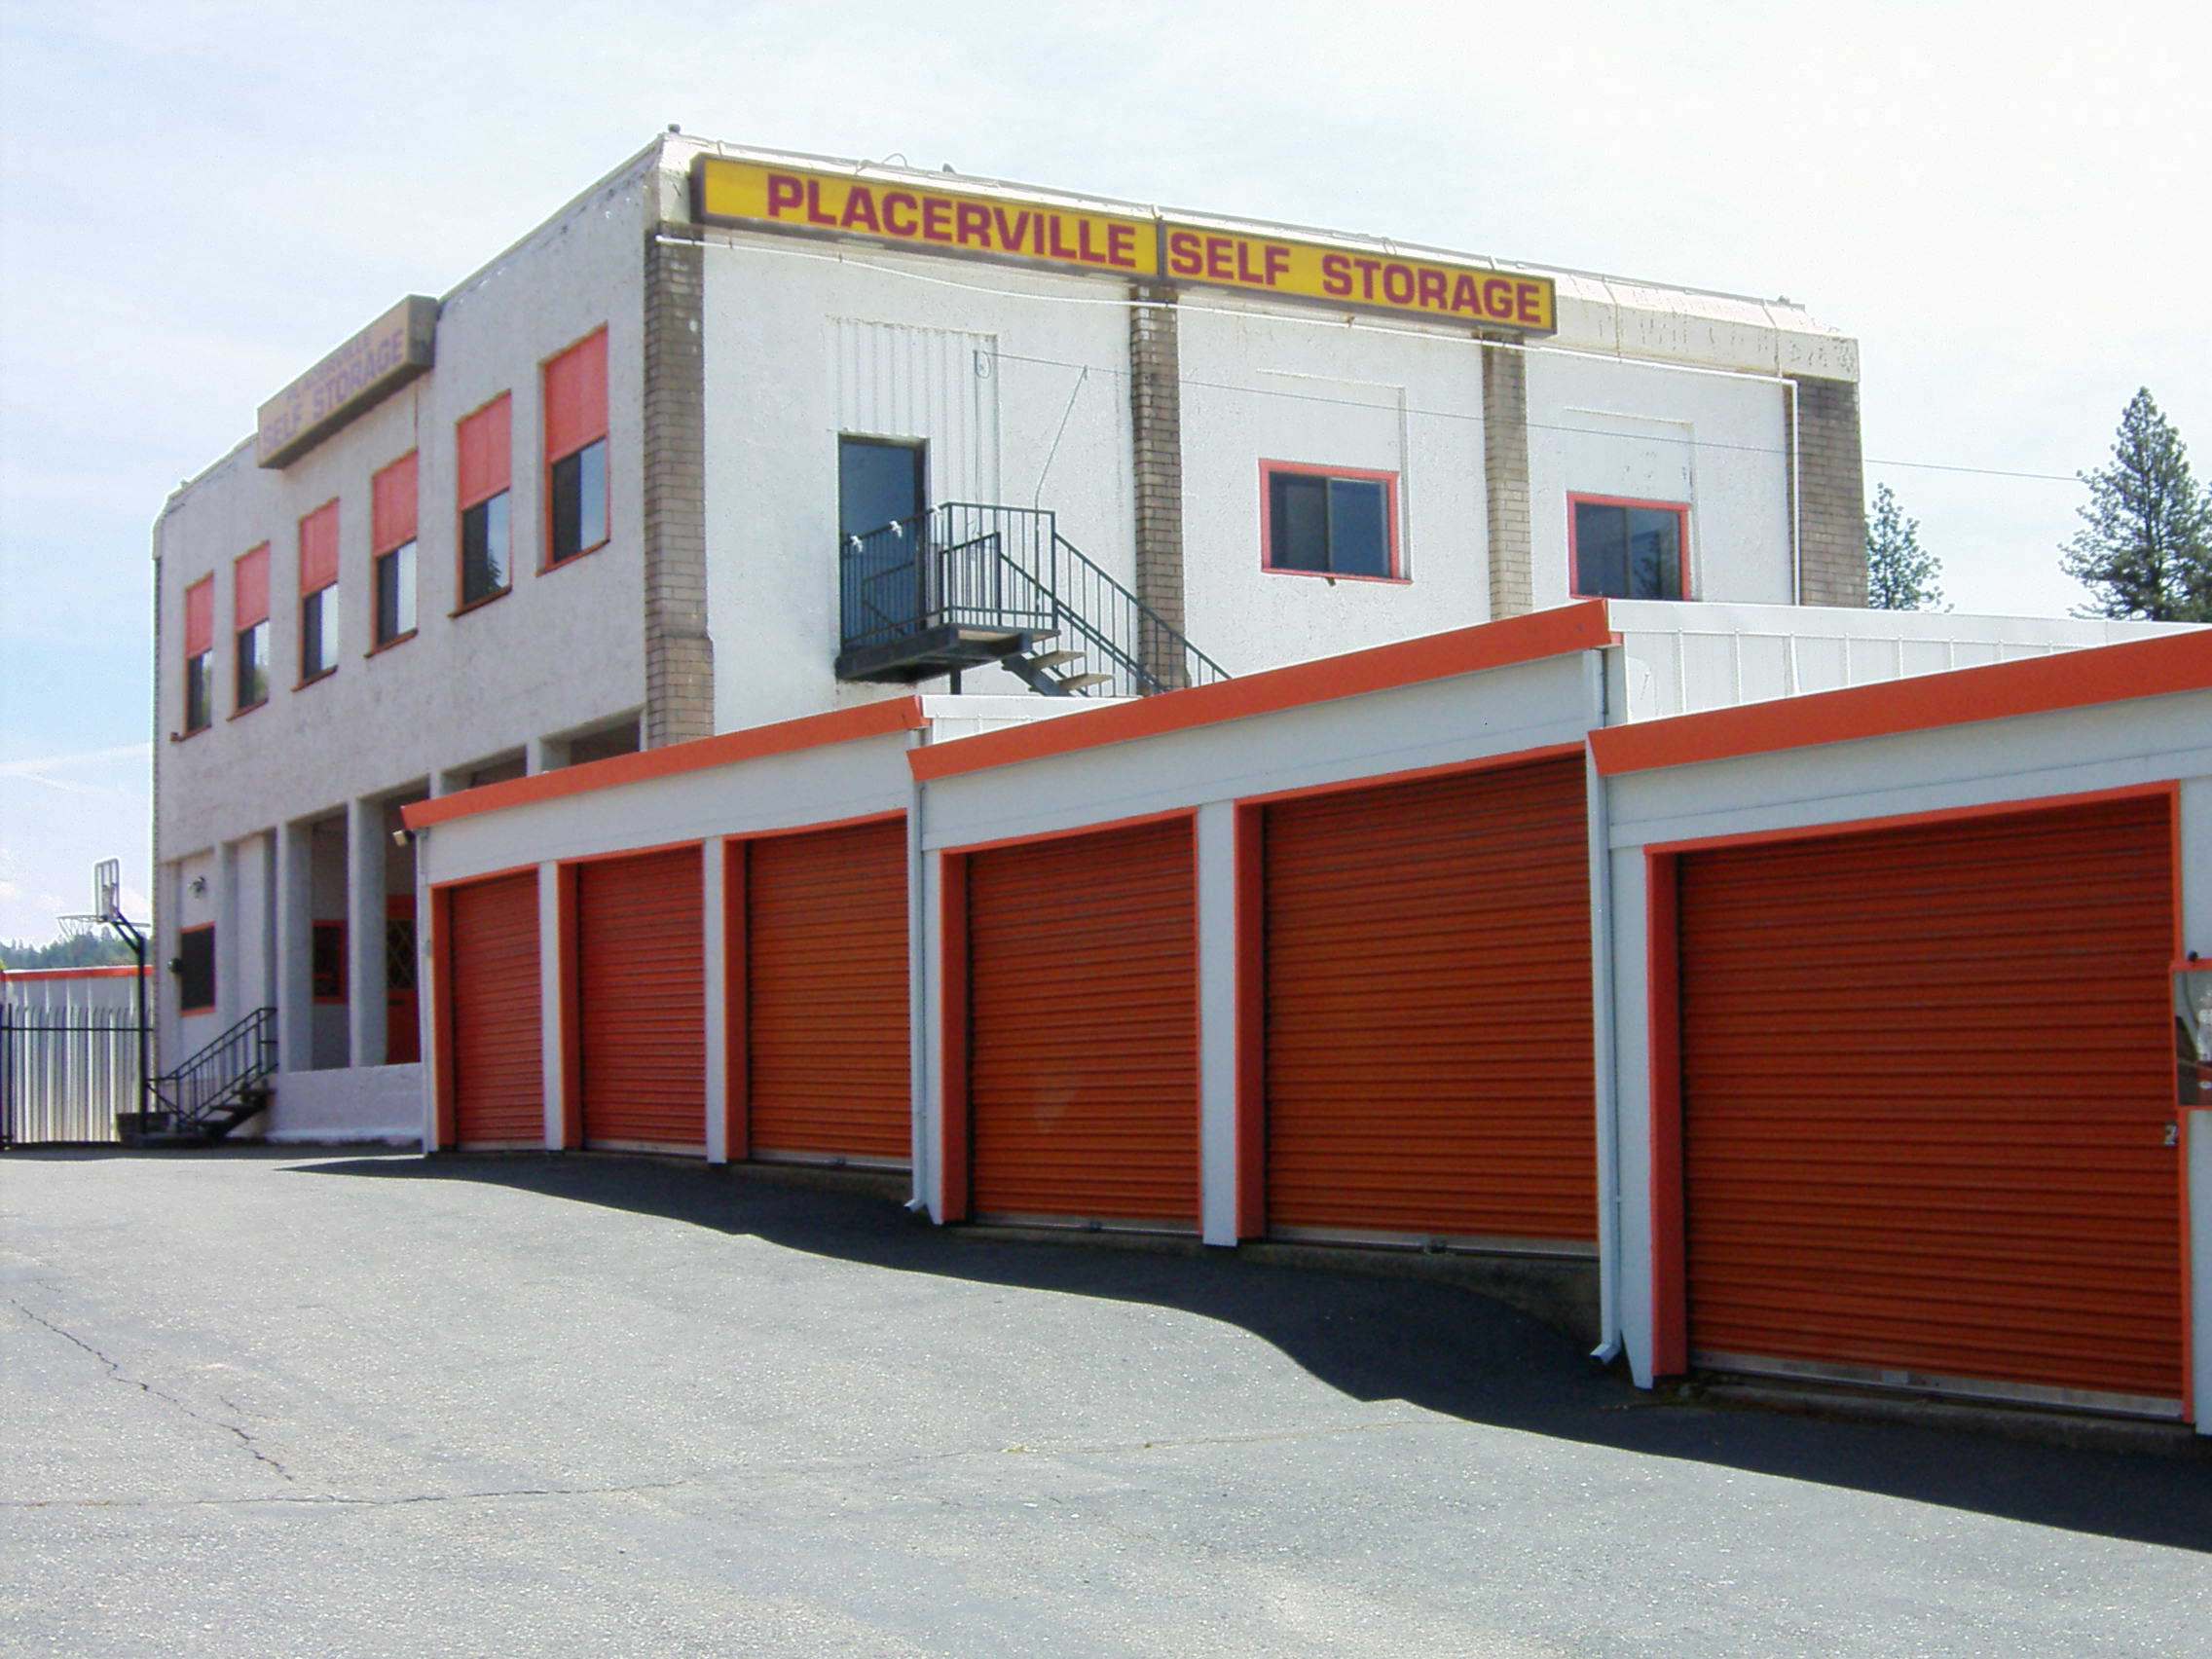 Sentry Storage Placerville Units Self Storage 1066